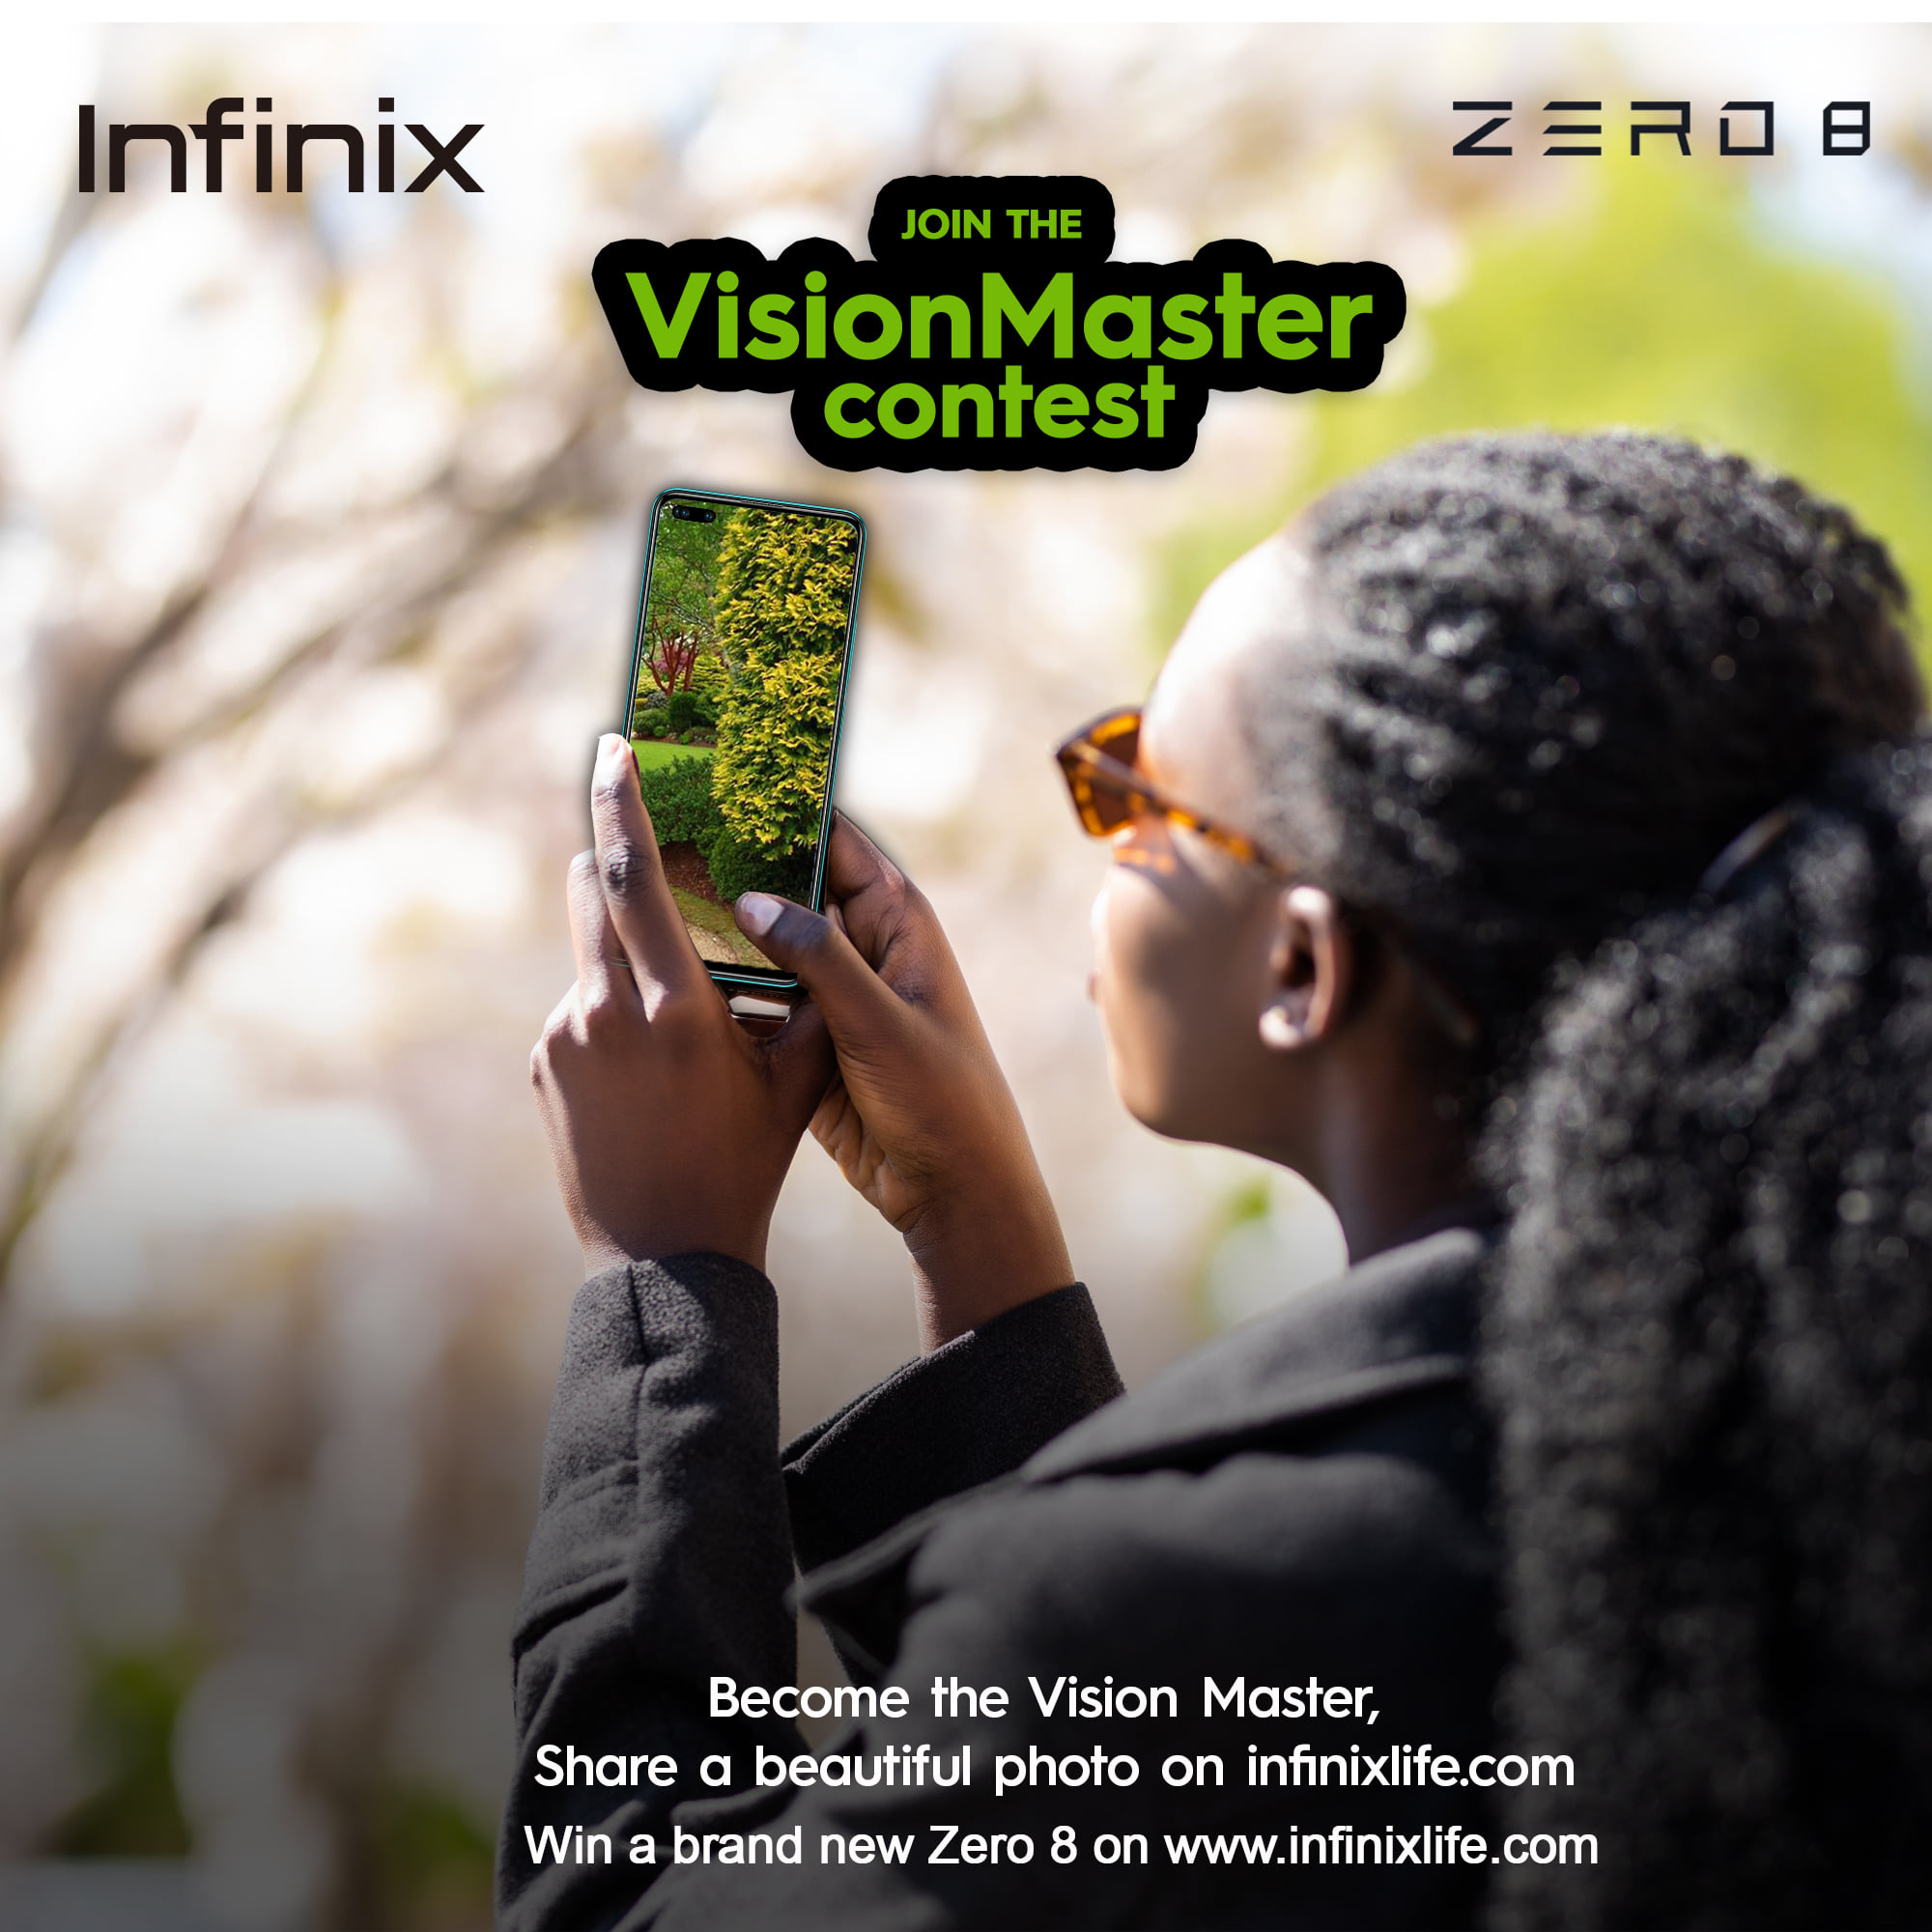 Join the Infinix Vision Master Contest and Win Prizes.